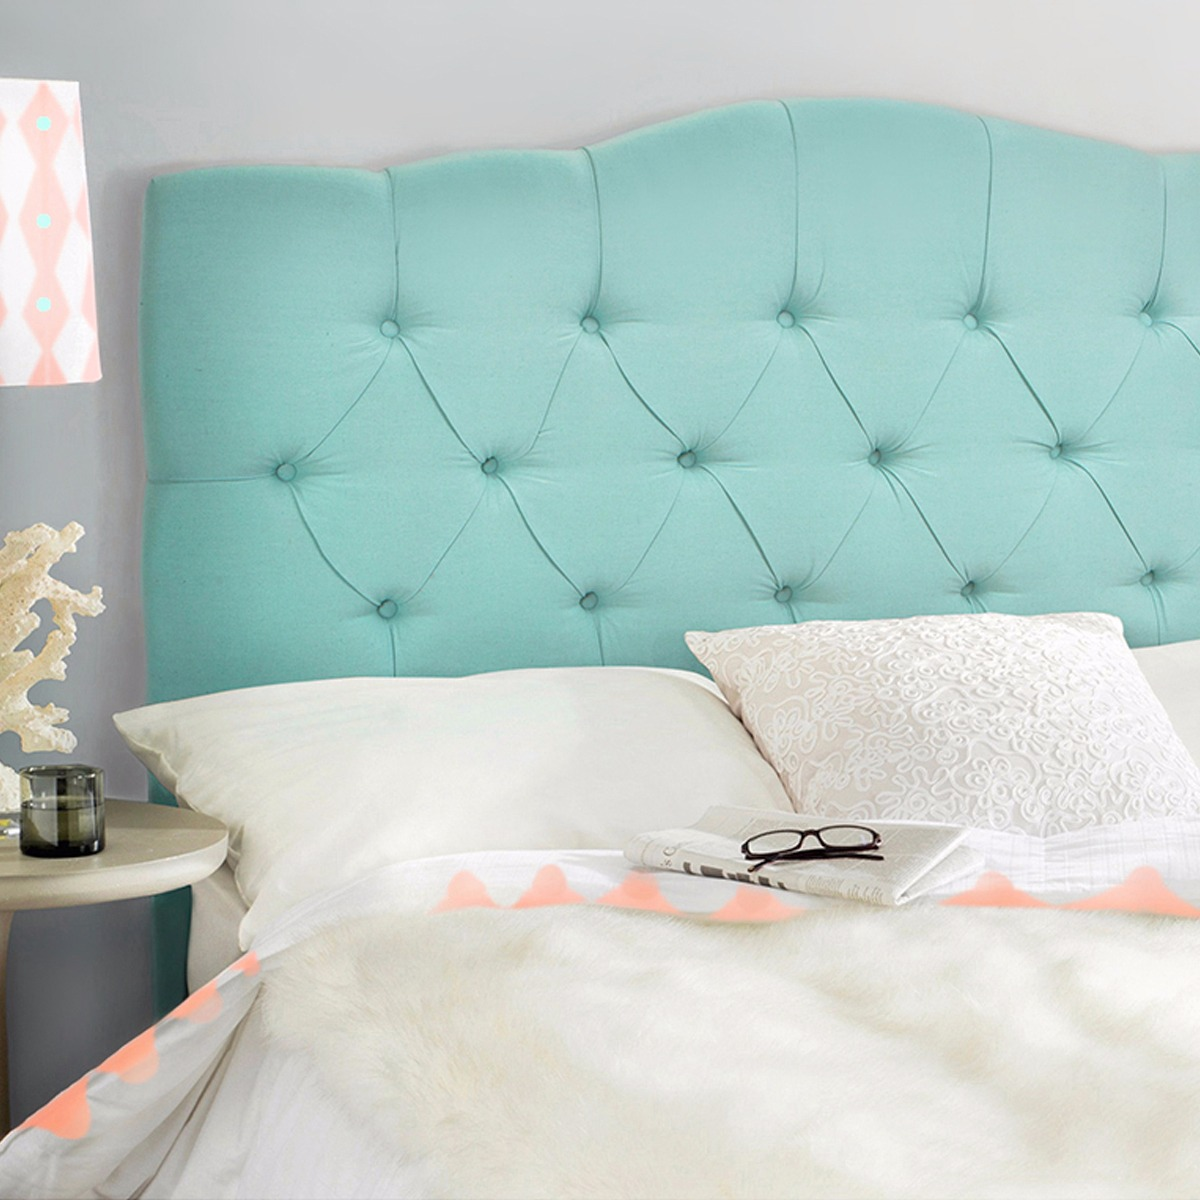 Full Queen Bed Headboard Modern Tufted Fabric, Sea Mist by